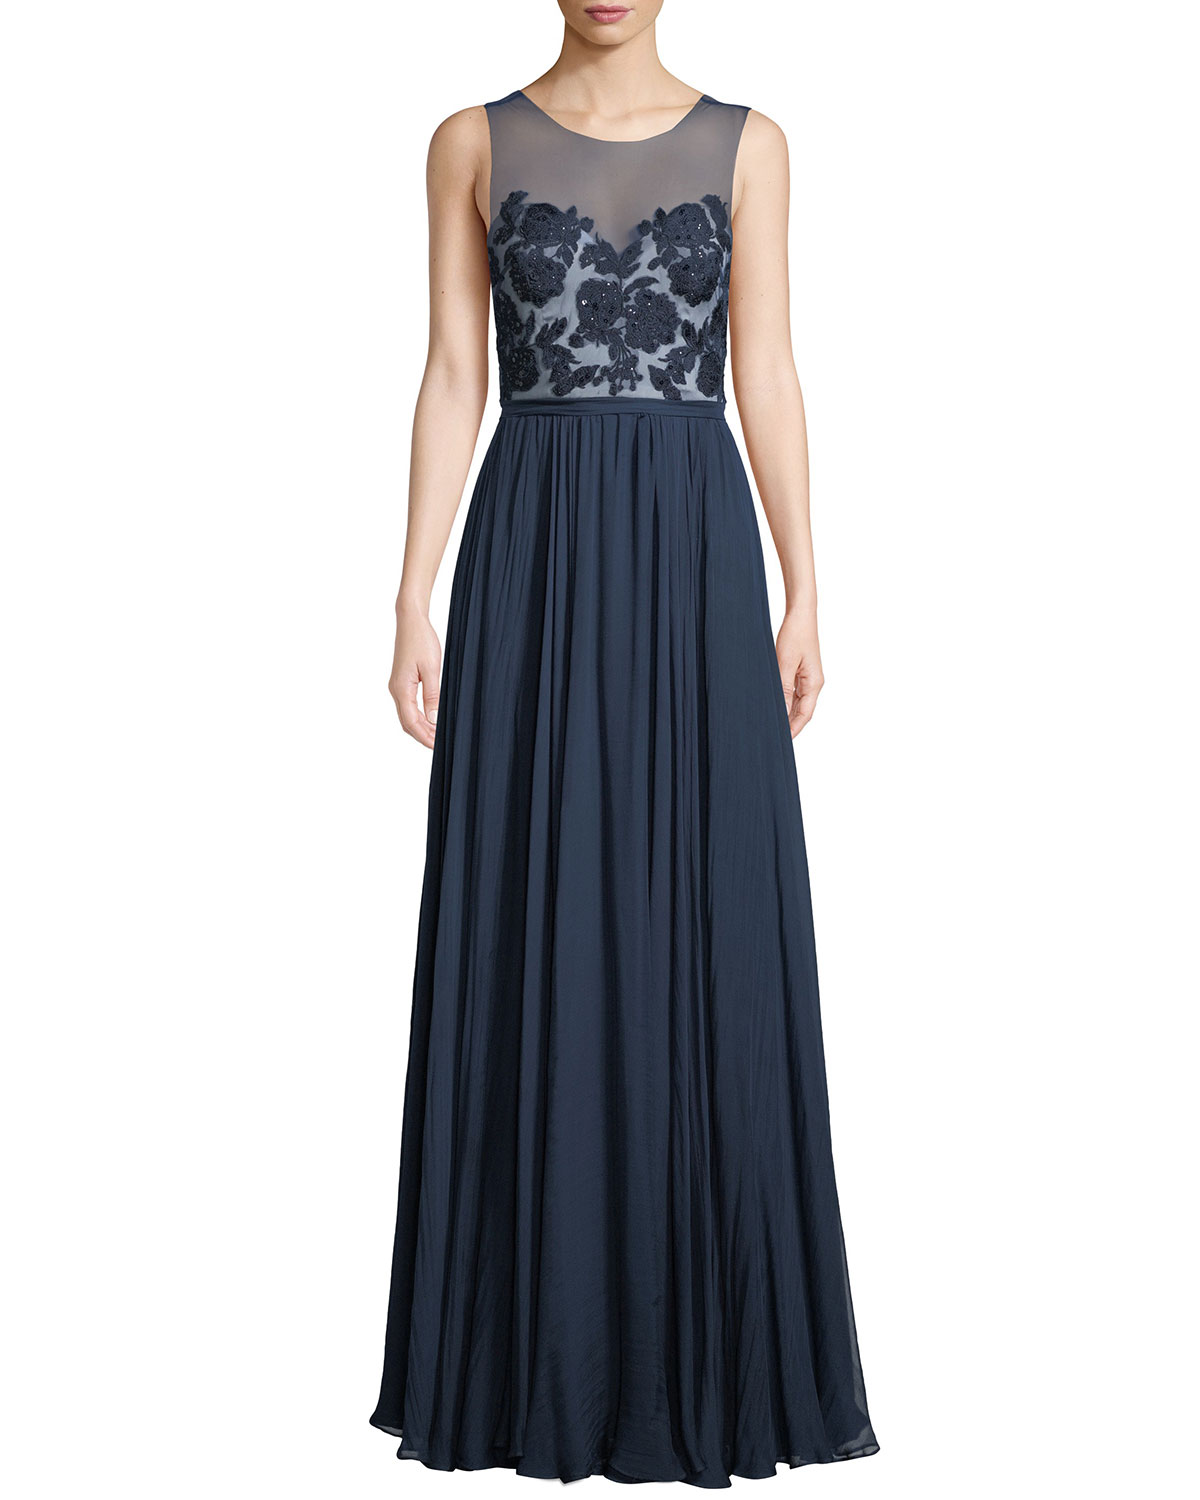 Lilyana Sheer Gown w/ Tulle & Lace